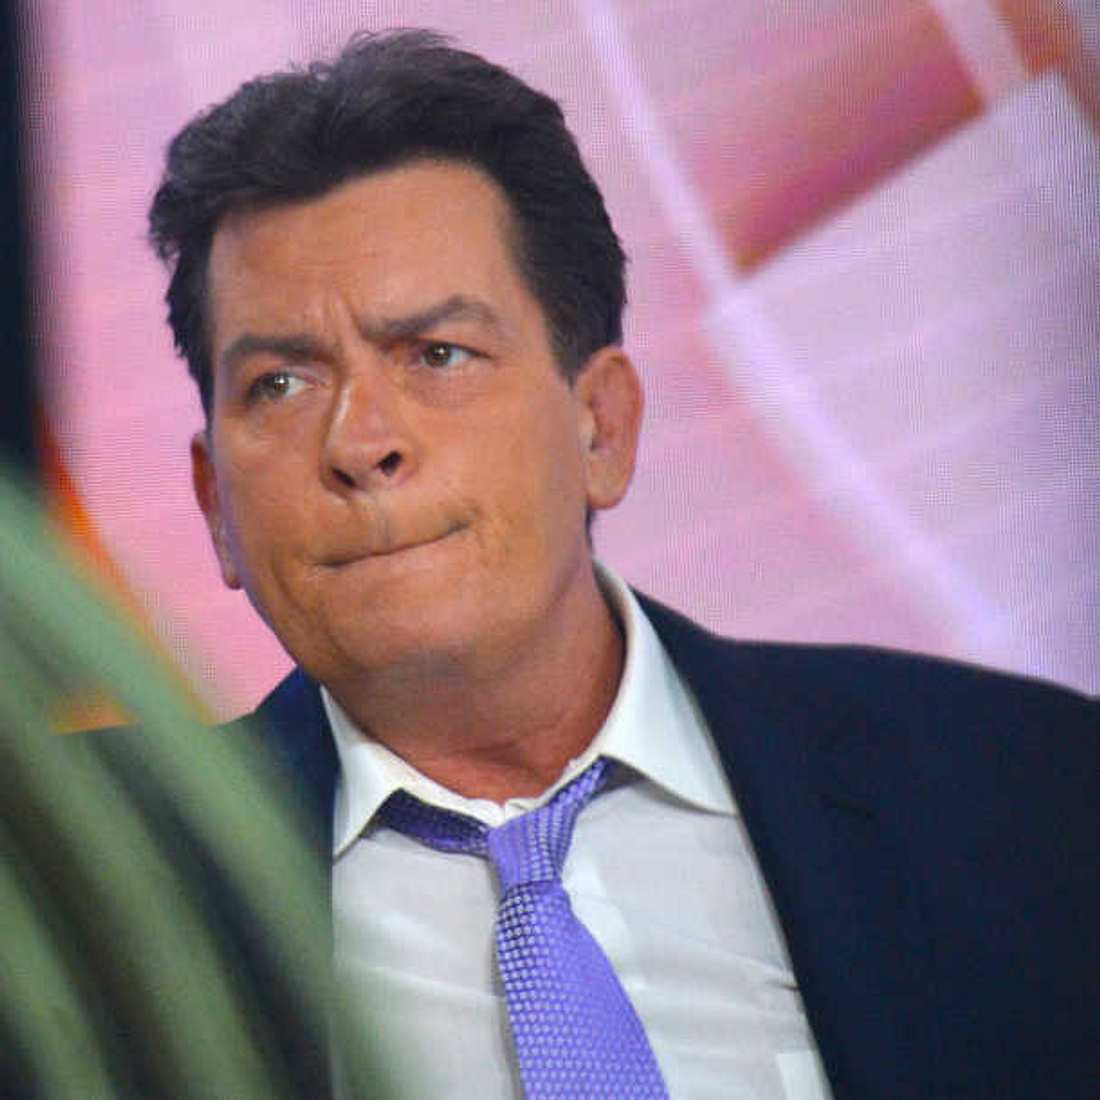 Charlie Sheen wurde nach HIV-Diagnose depressiv!